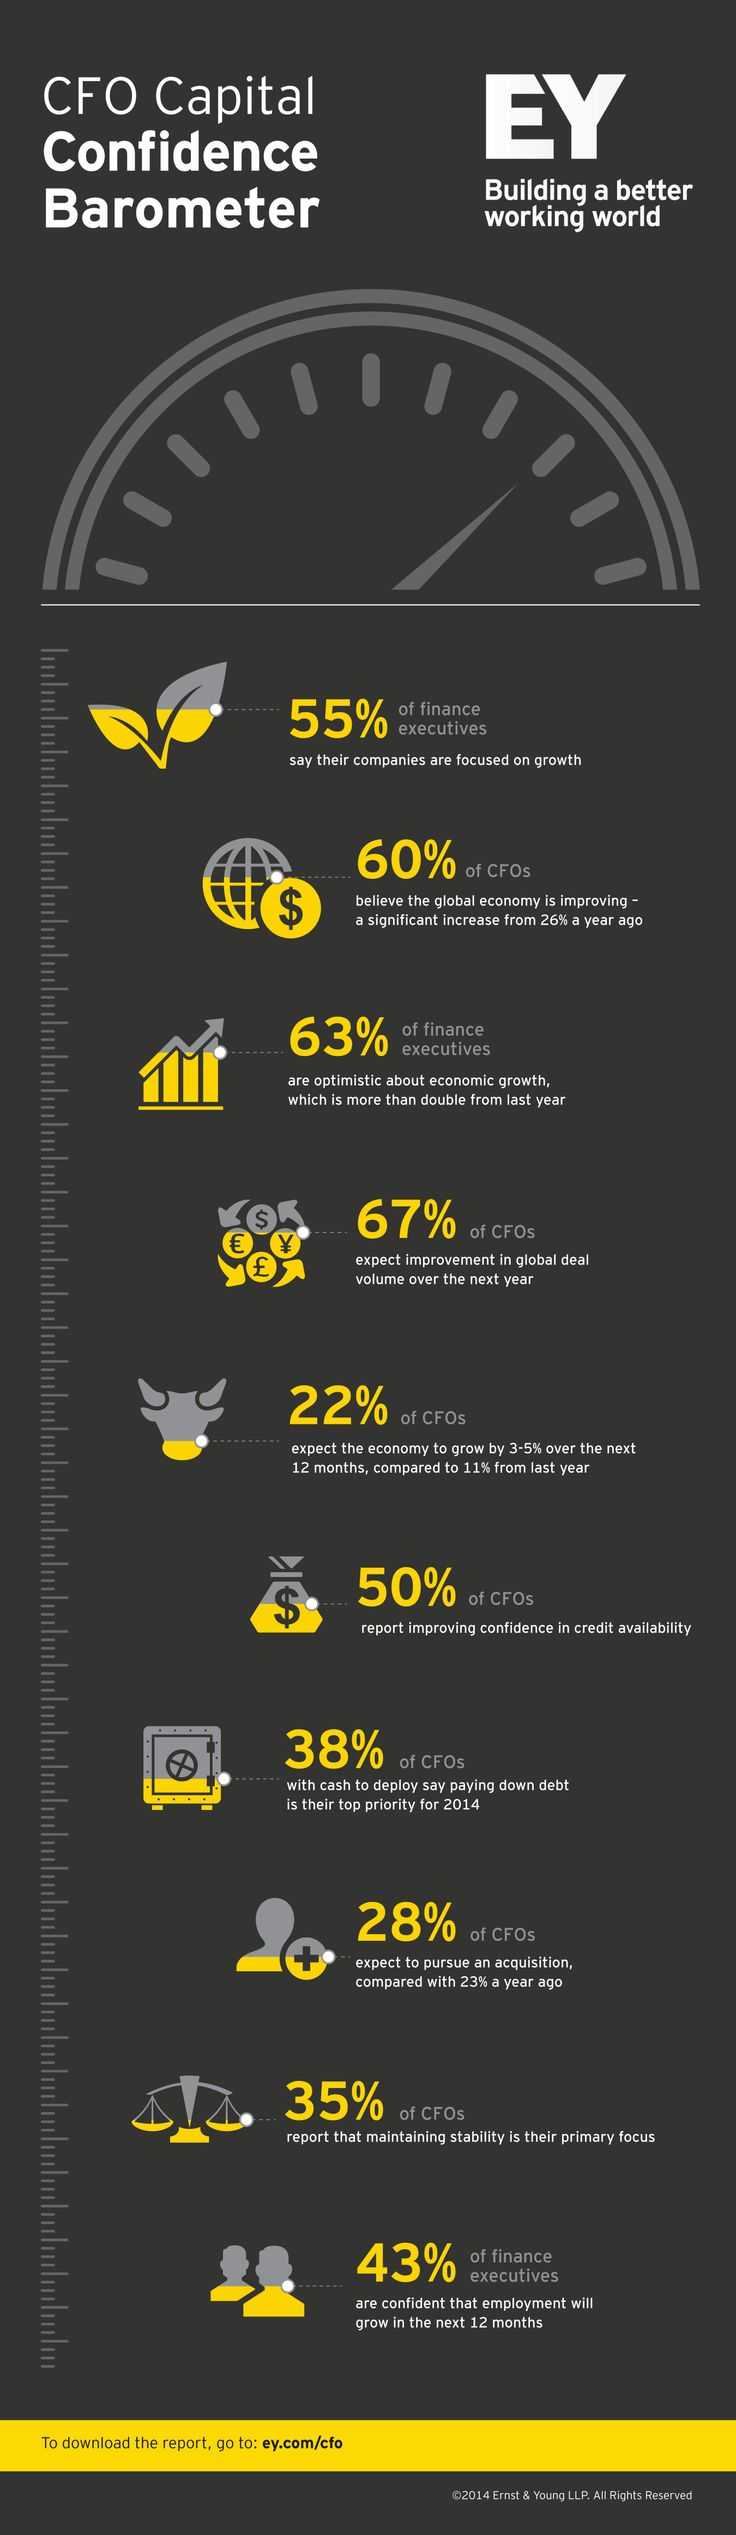 The #EY CFO Capital Confidence Barometer features the views of 376 CFOs on the economy, growth, access to capital, M&A and more. Visit www.ey.com/cfo to download the latest report.Cfo Programs, Ey Cfo, 376 Cfos, Visit Www Ey Com Cfo, Cfo Capitals